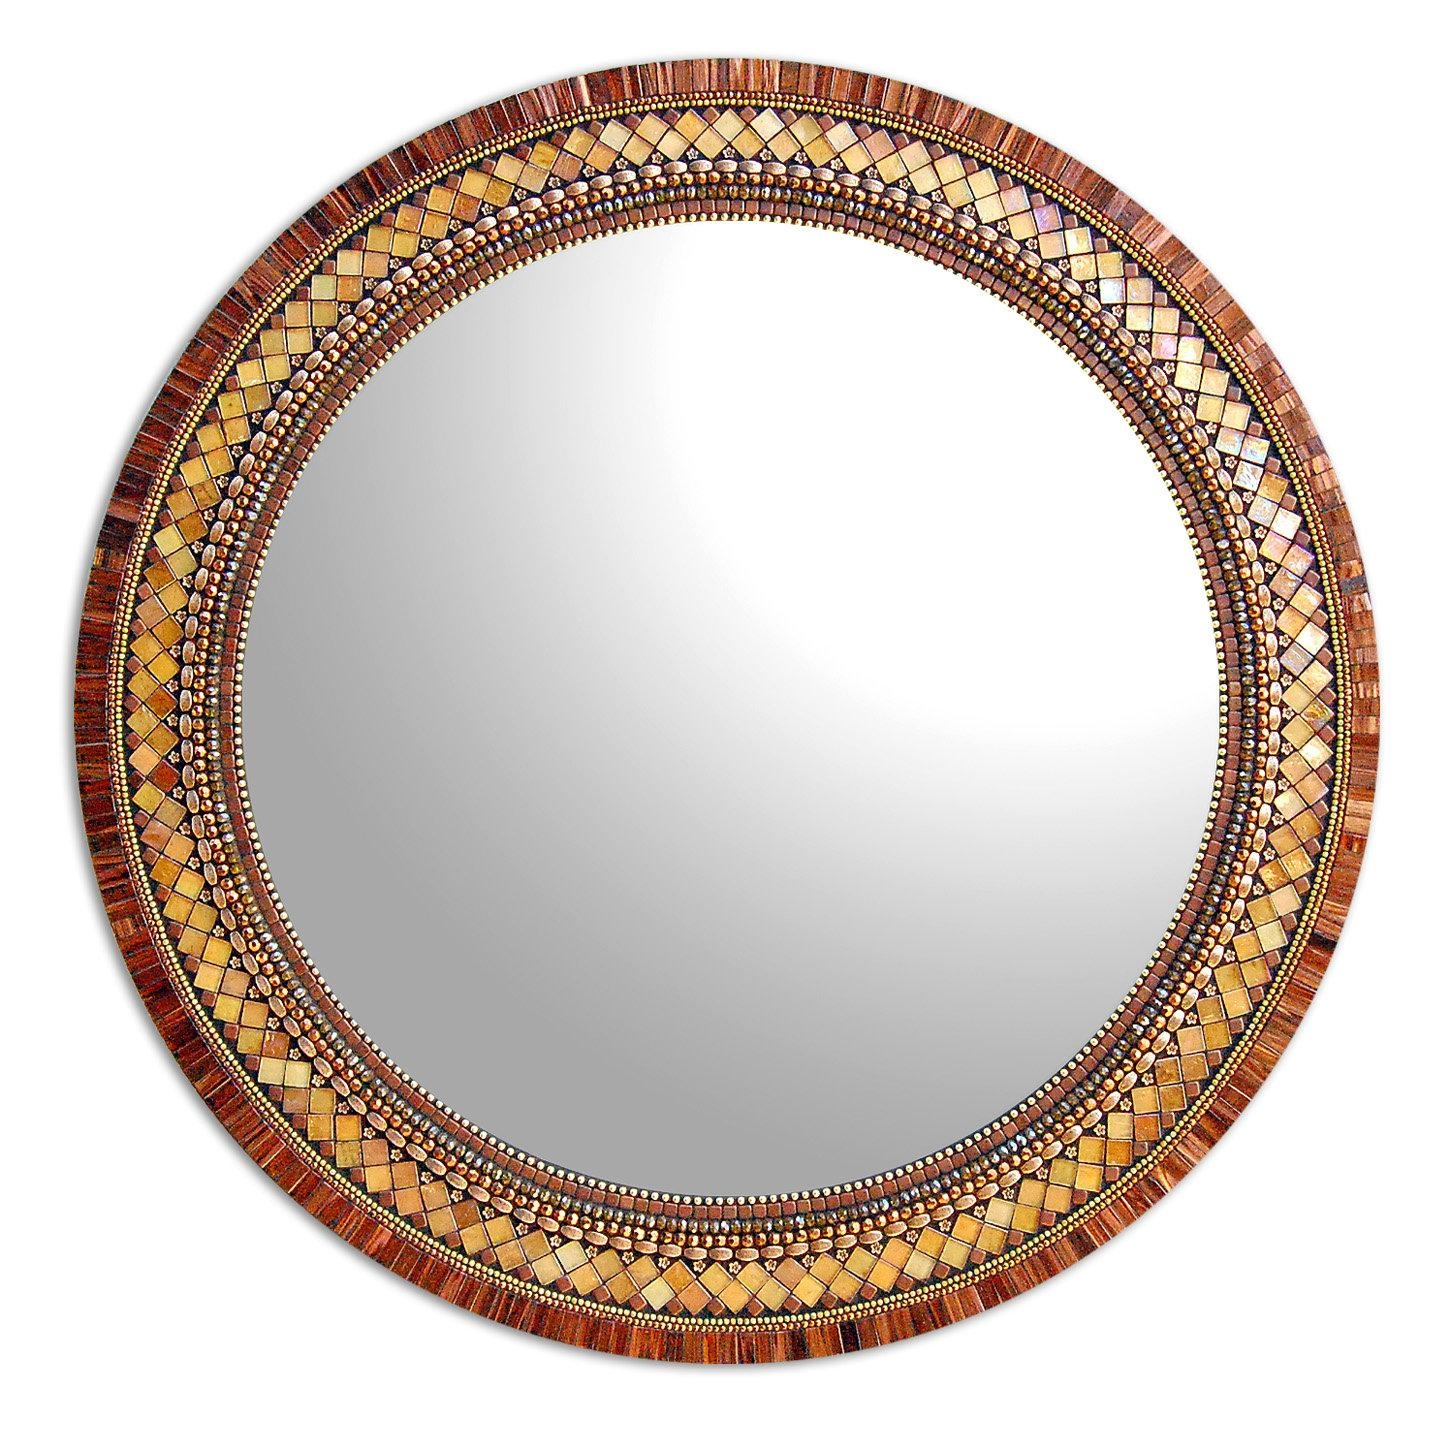 Original Art Mirrors Madenorth American Artists | Artful Home With Round Mosaic Mirrors (View 18 of 20)